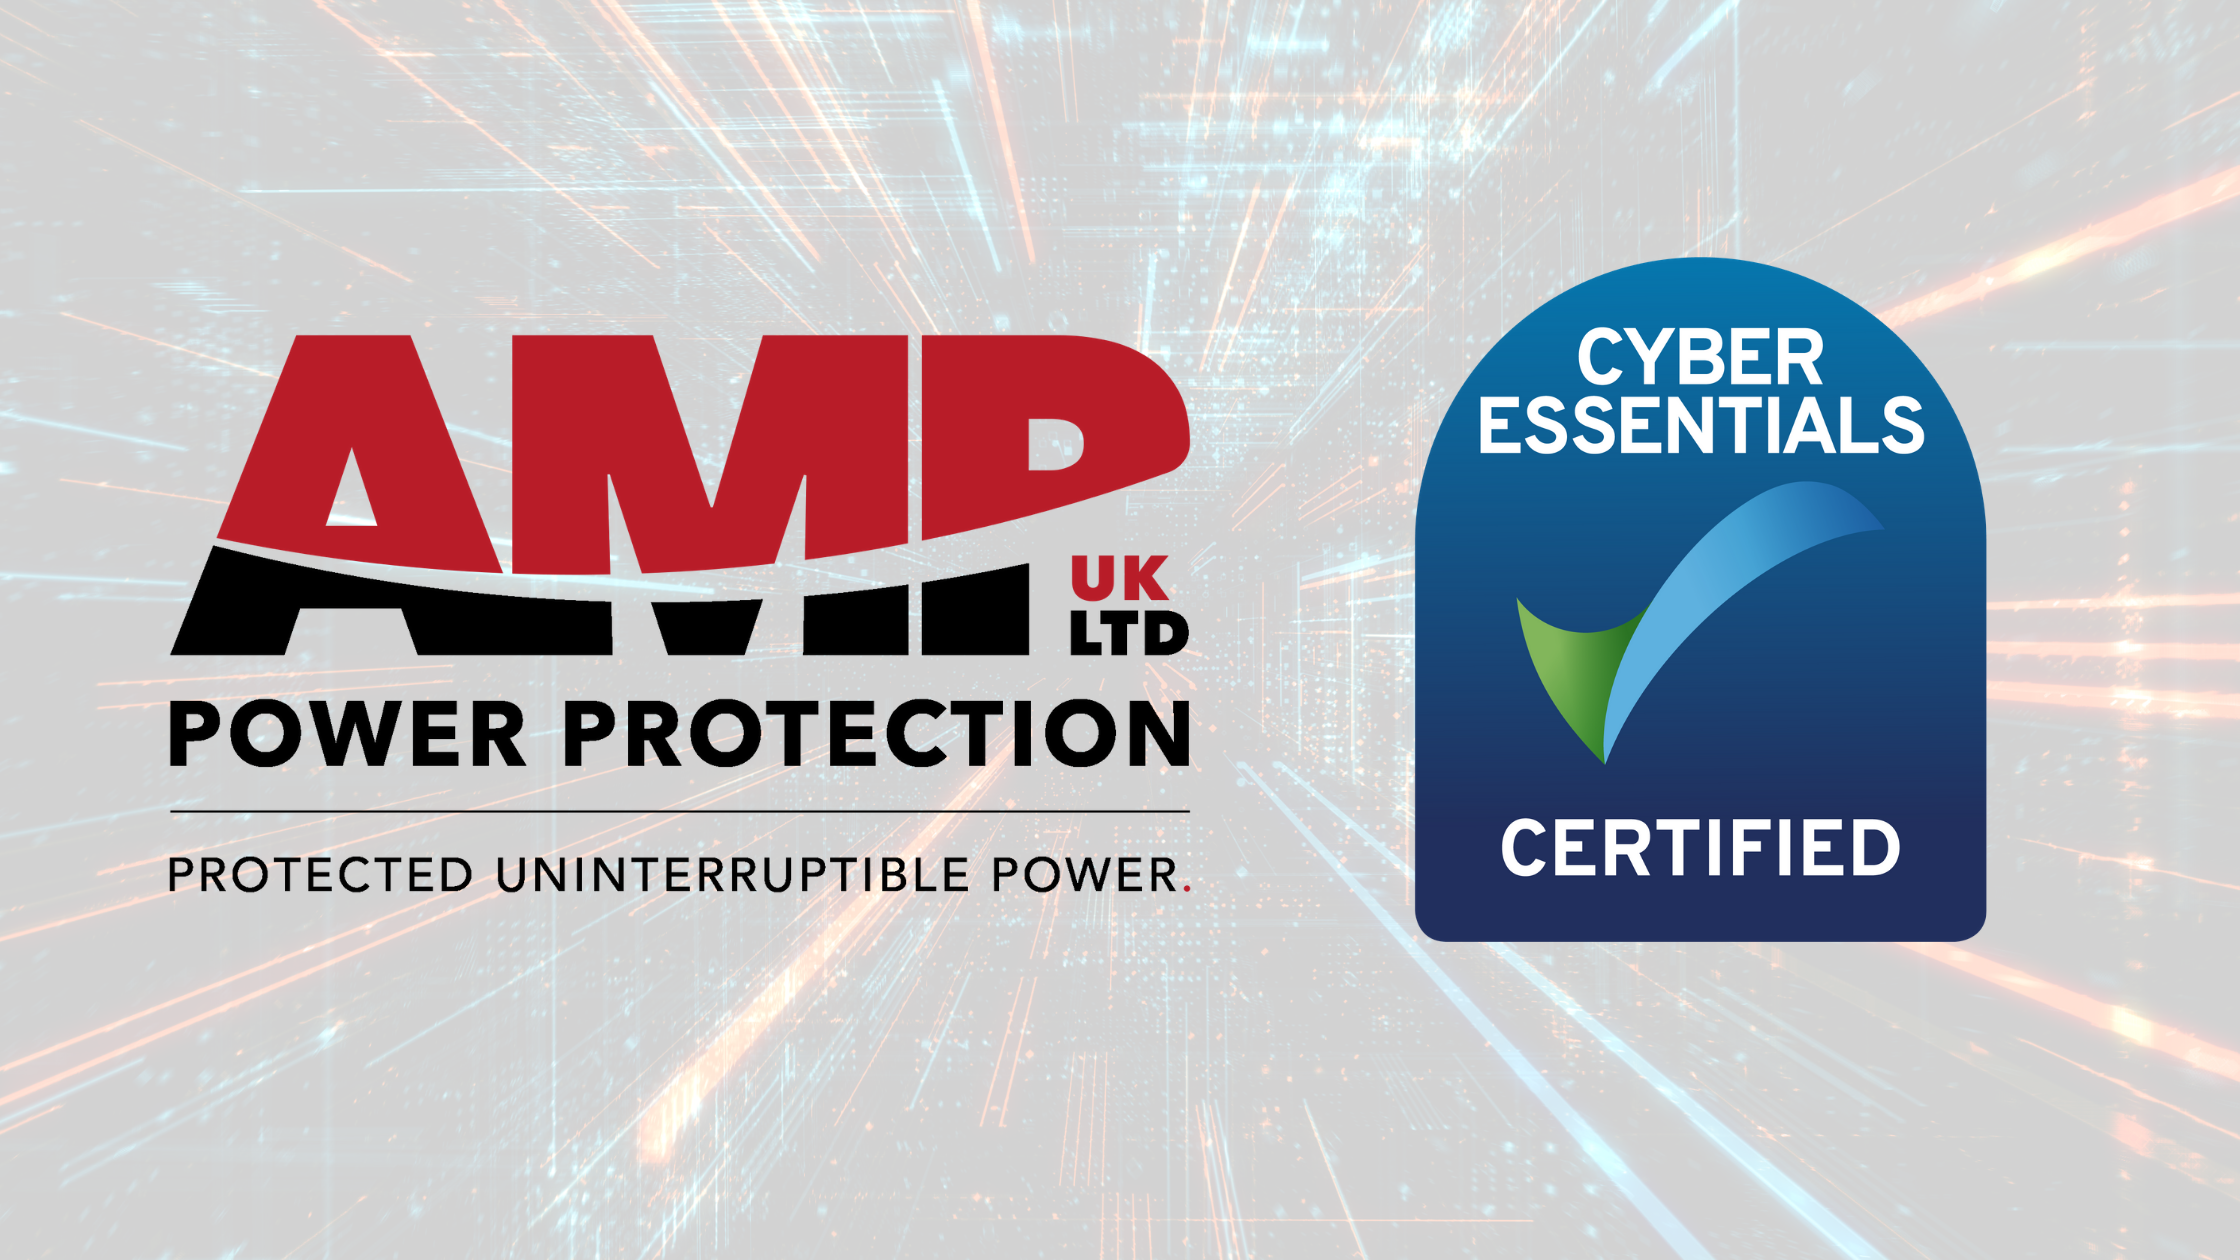 AMP Power Protection Achieve Cyber Essentials Accreditation